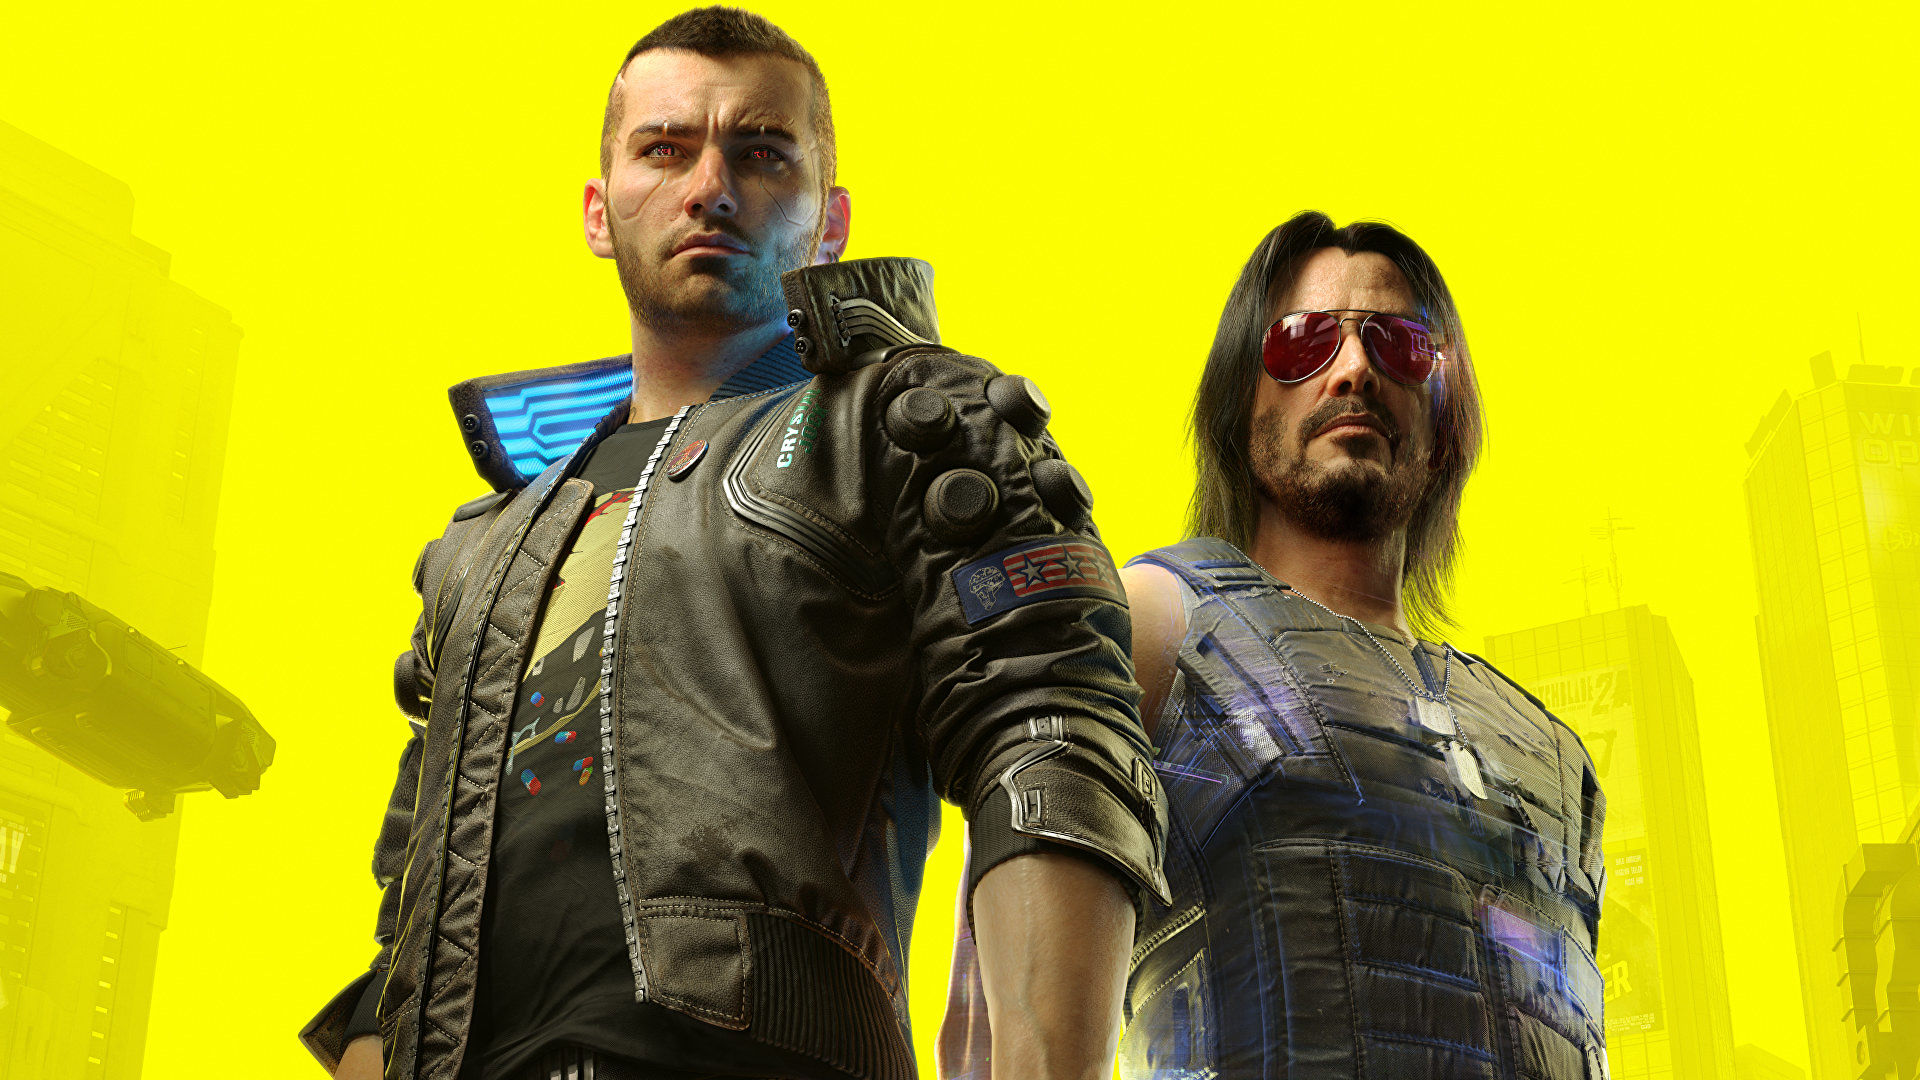 cyberpunk-2077-for-ps5-and-xbox-series-x:-what-we-know-so-far